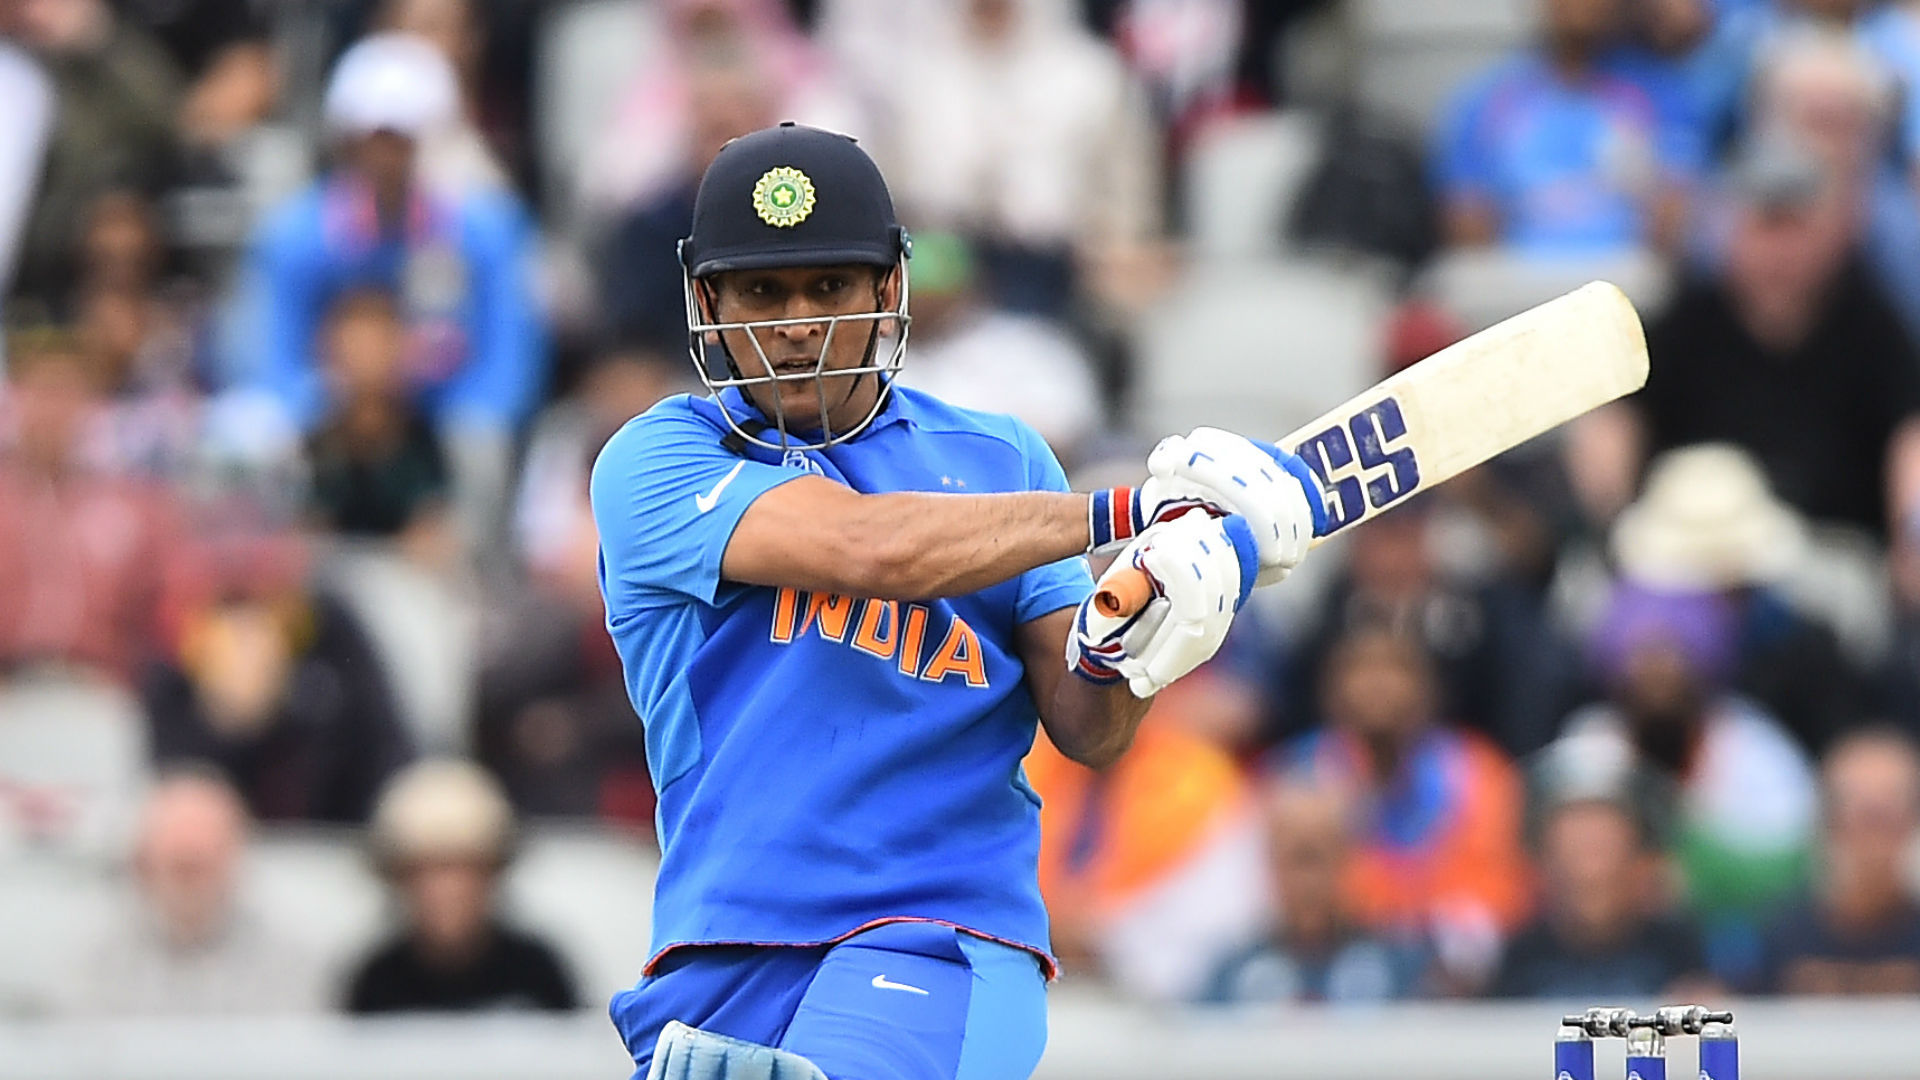 MS Dhoni to stay with Chennai Super Kings for 2021 IPL season